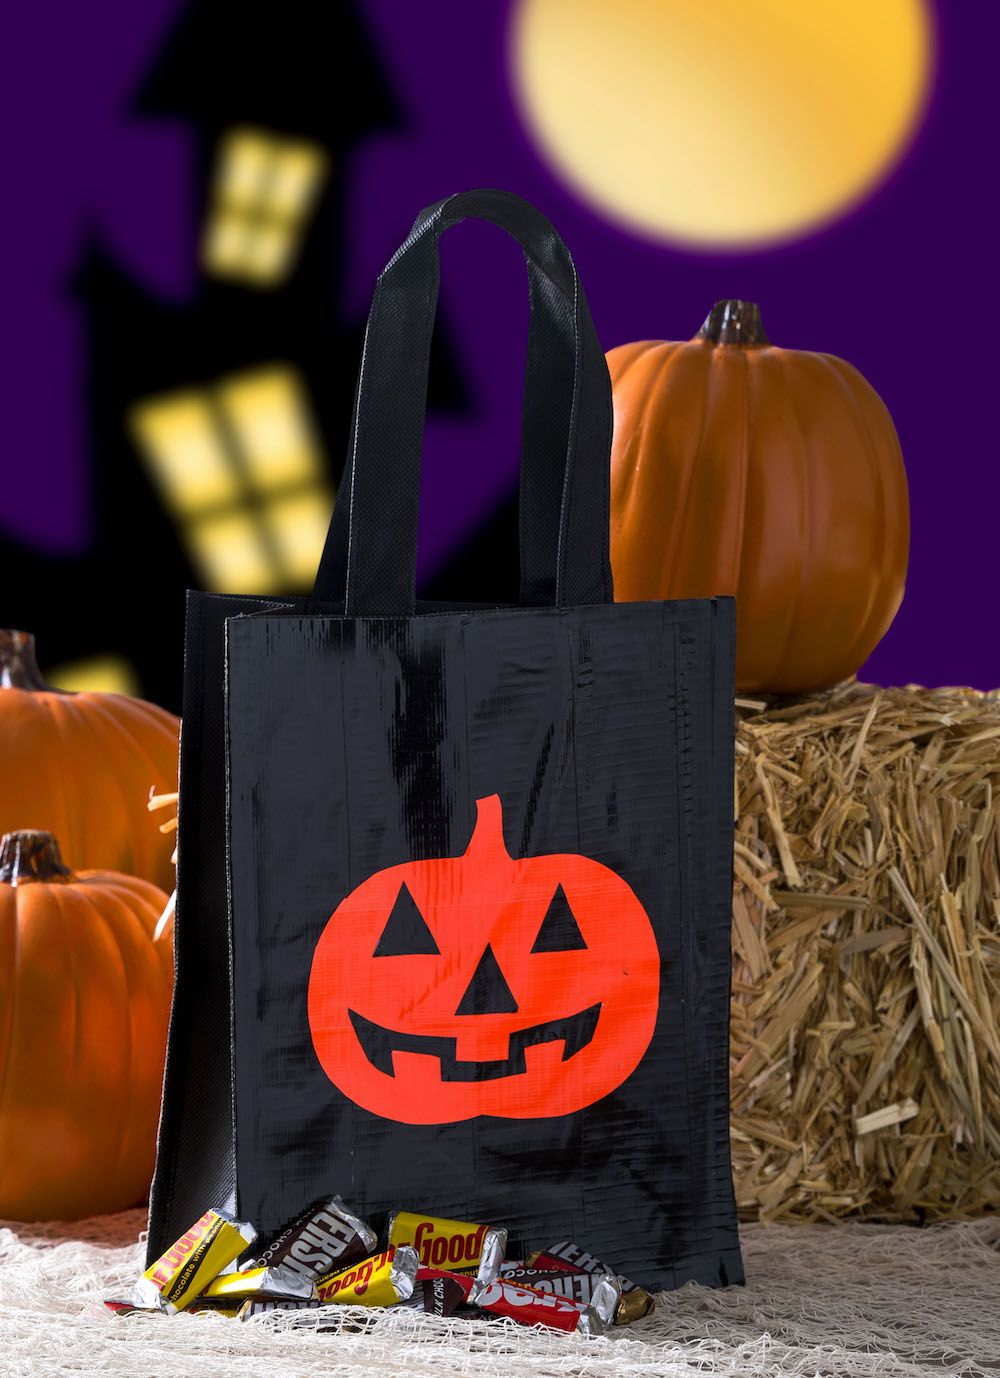 Duck Tape DIY trick or treat bag two ways! Duck tape and Spooky - Spooky Halloween Decorations